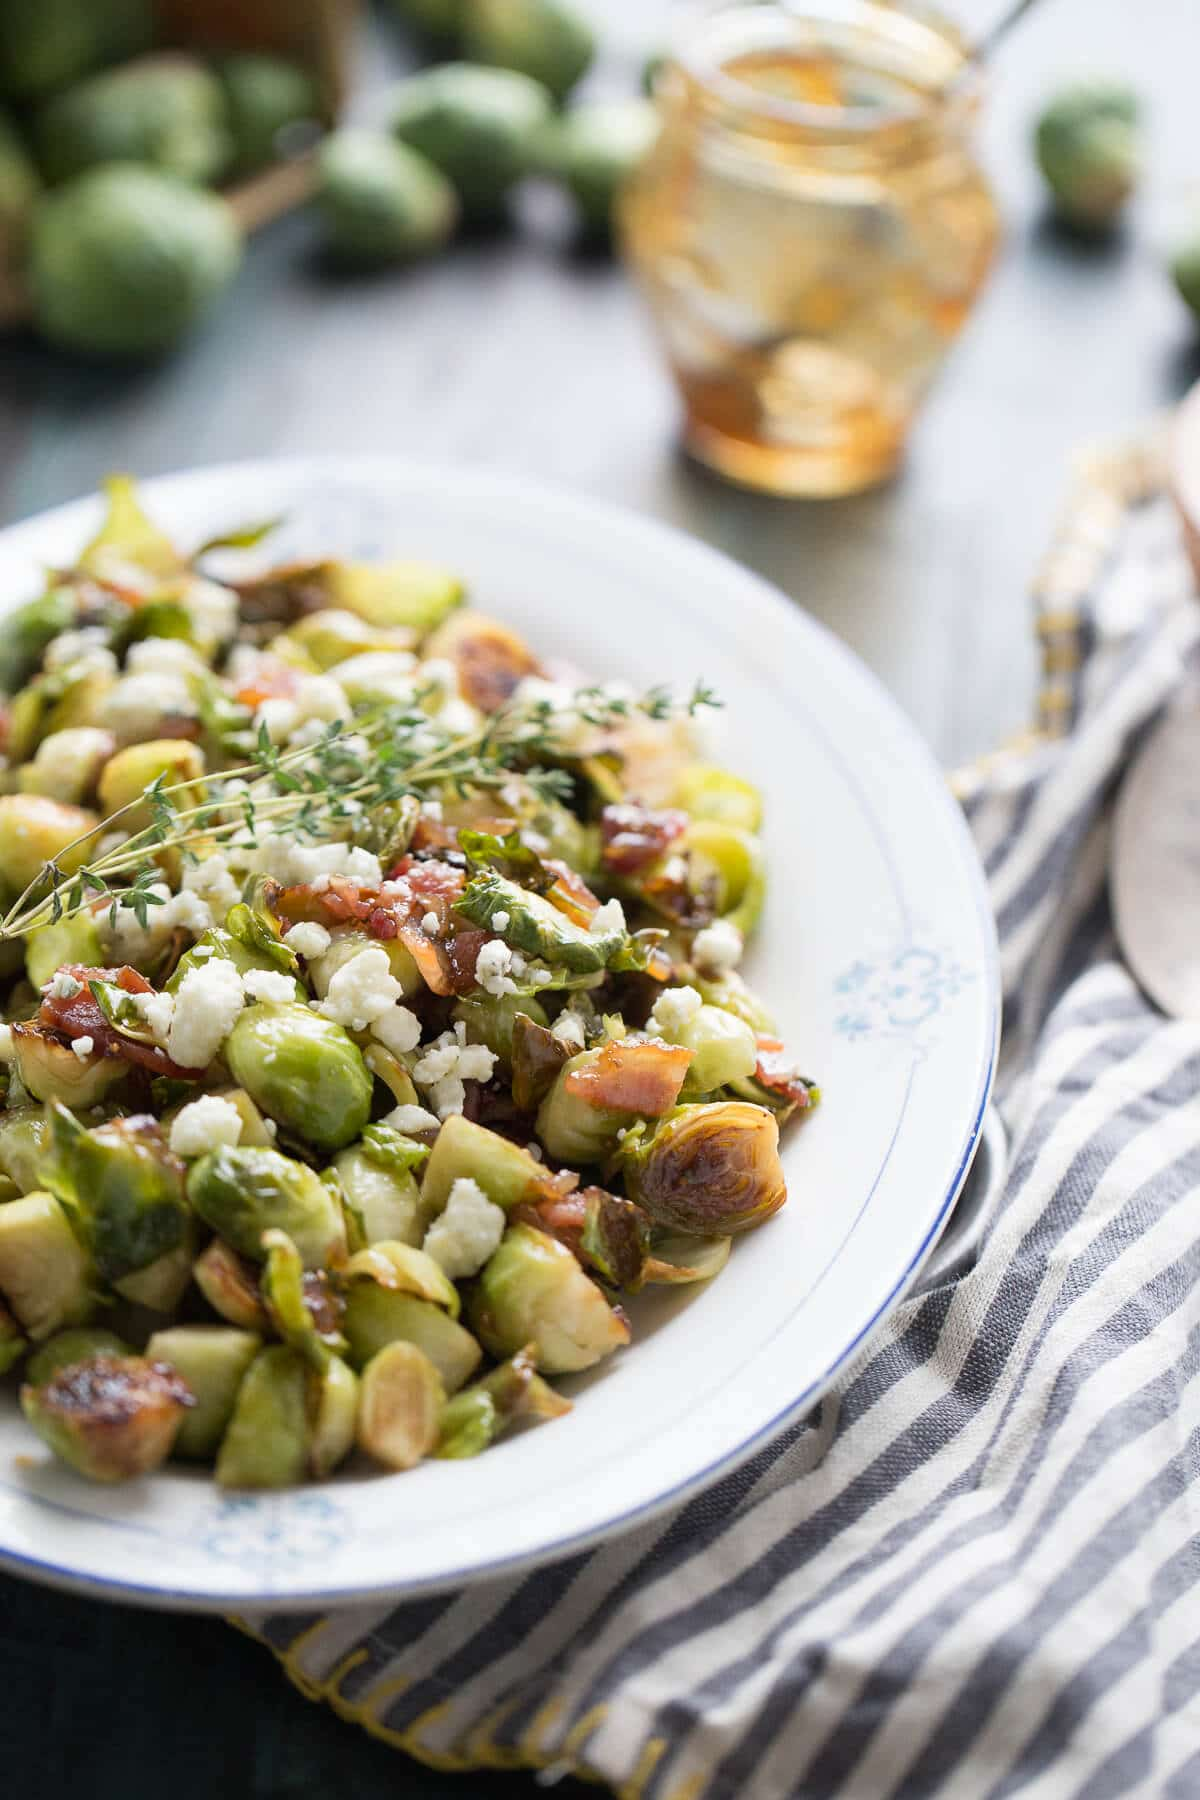 A plate of Brussels sprouts